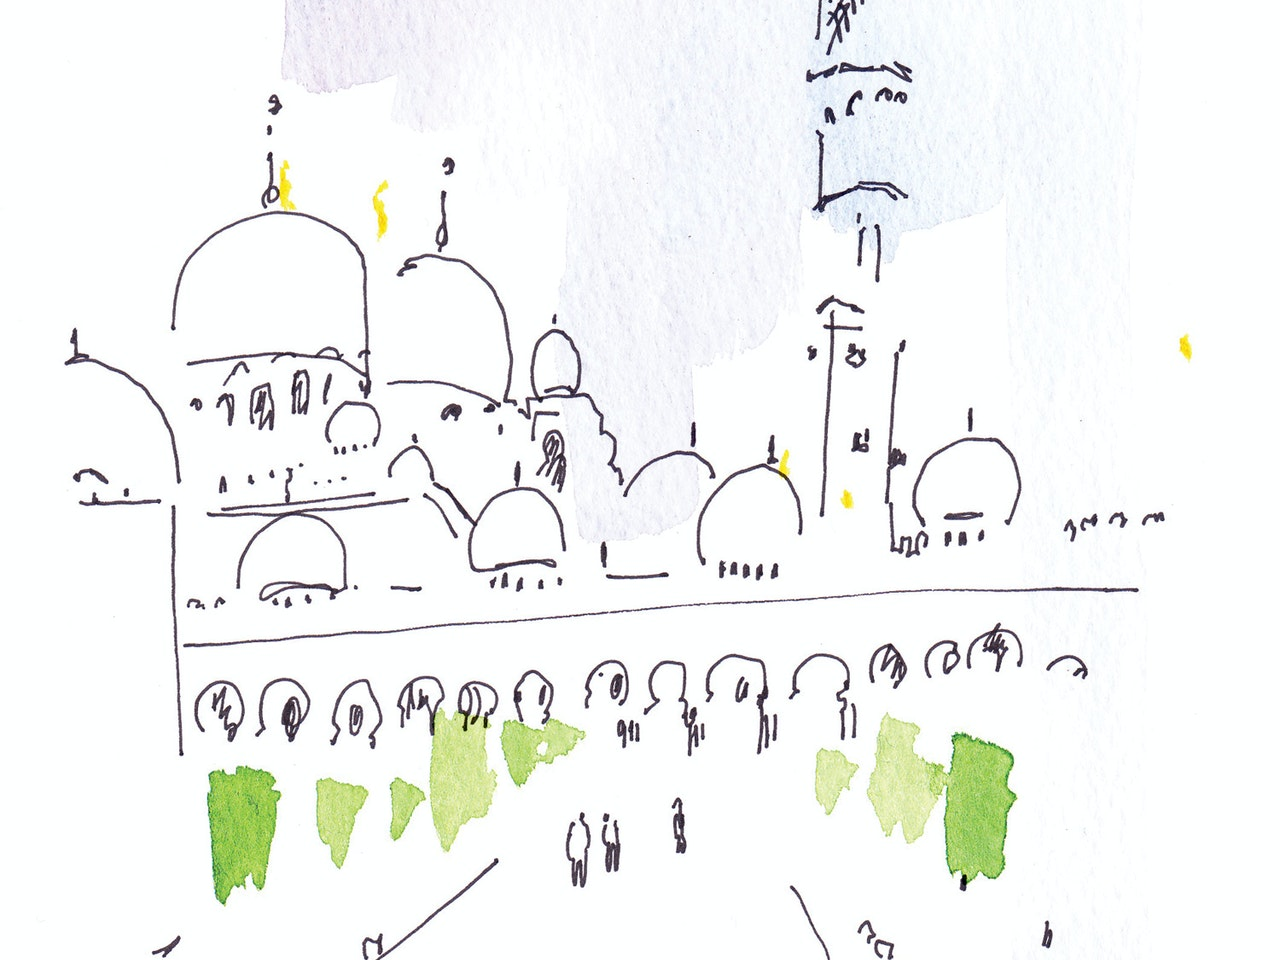 Vicky Bentham Green 25.09.14 Grand Mosque Abu Dhabi3 Unpublished